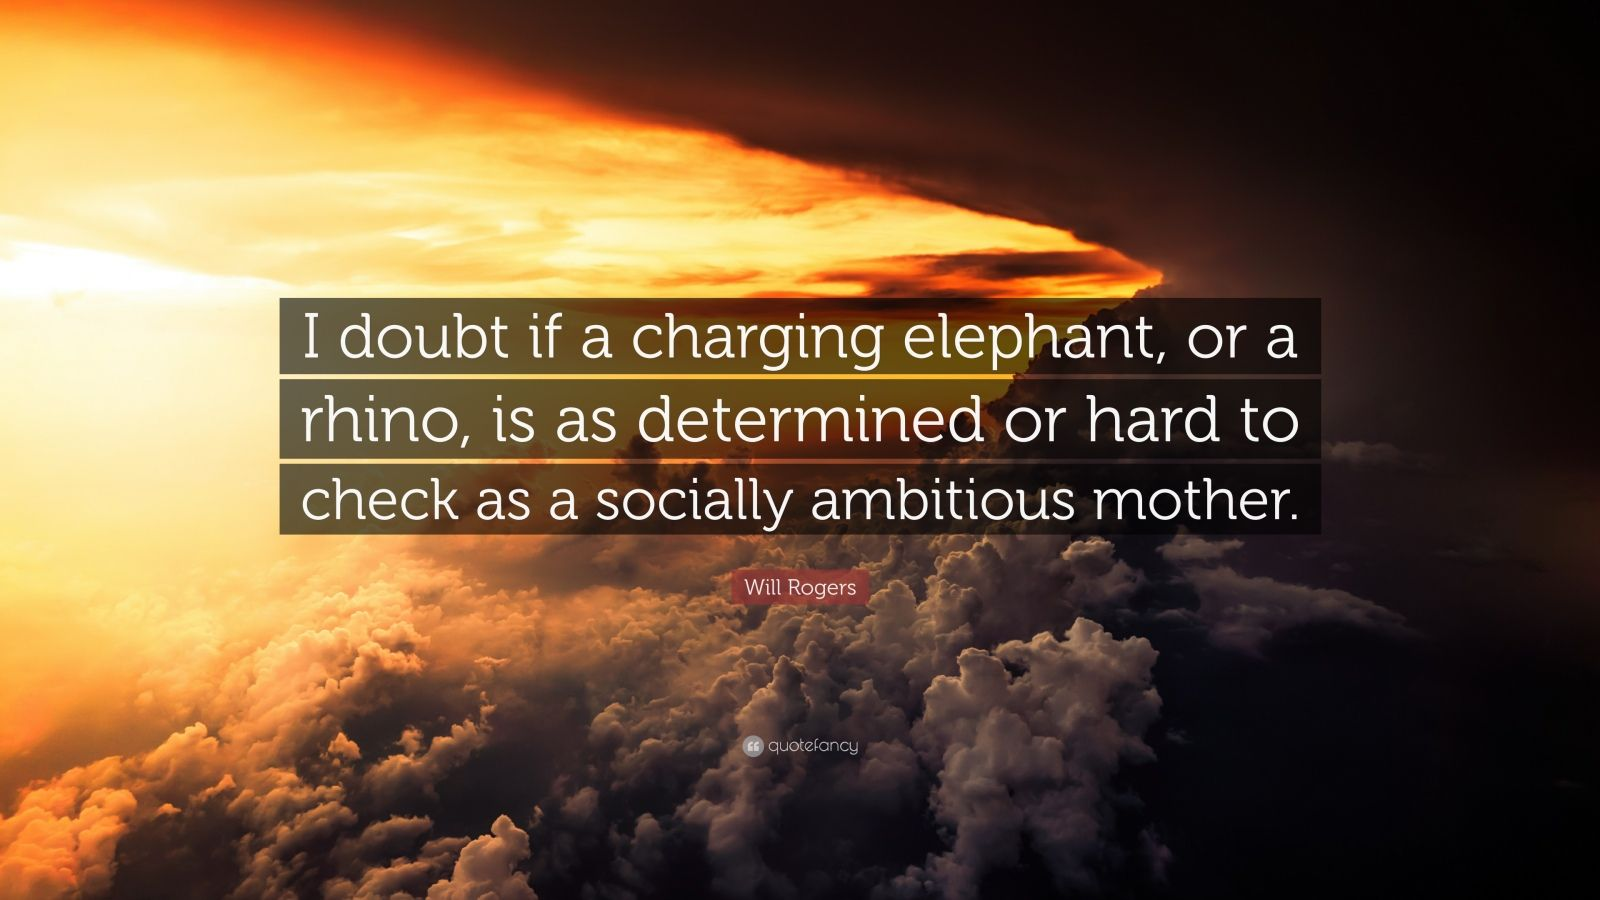 """Will Rogers Quote: """"I doubt if a charging elephant, or a rhino, is as determined or hard to check as a socially ambitious mother."""""""